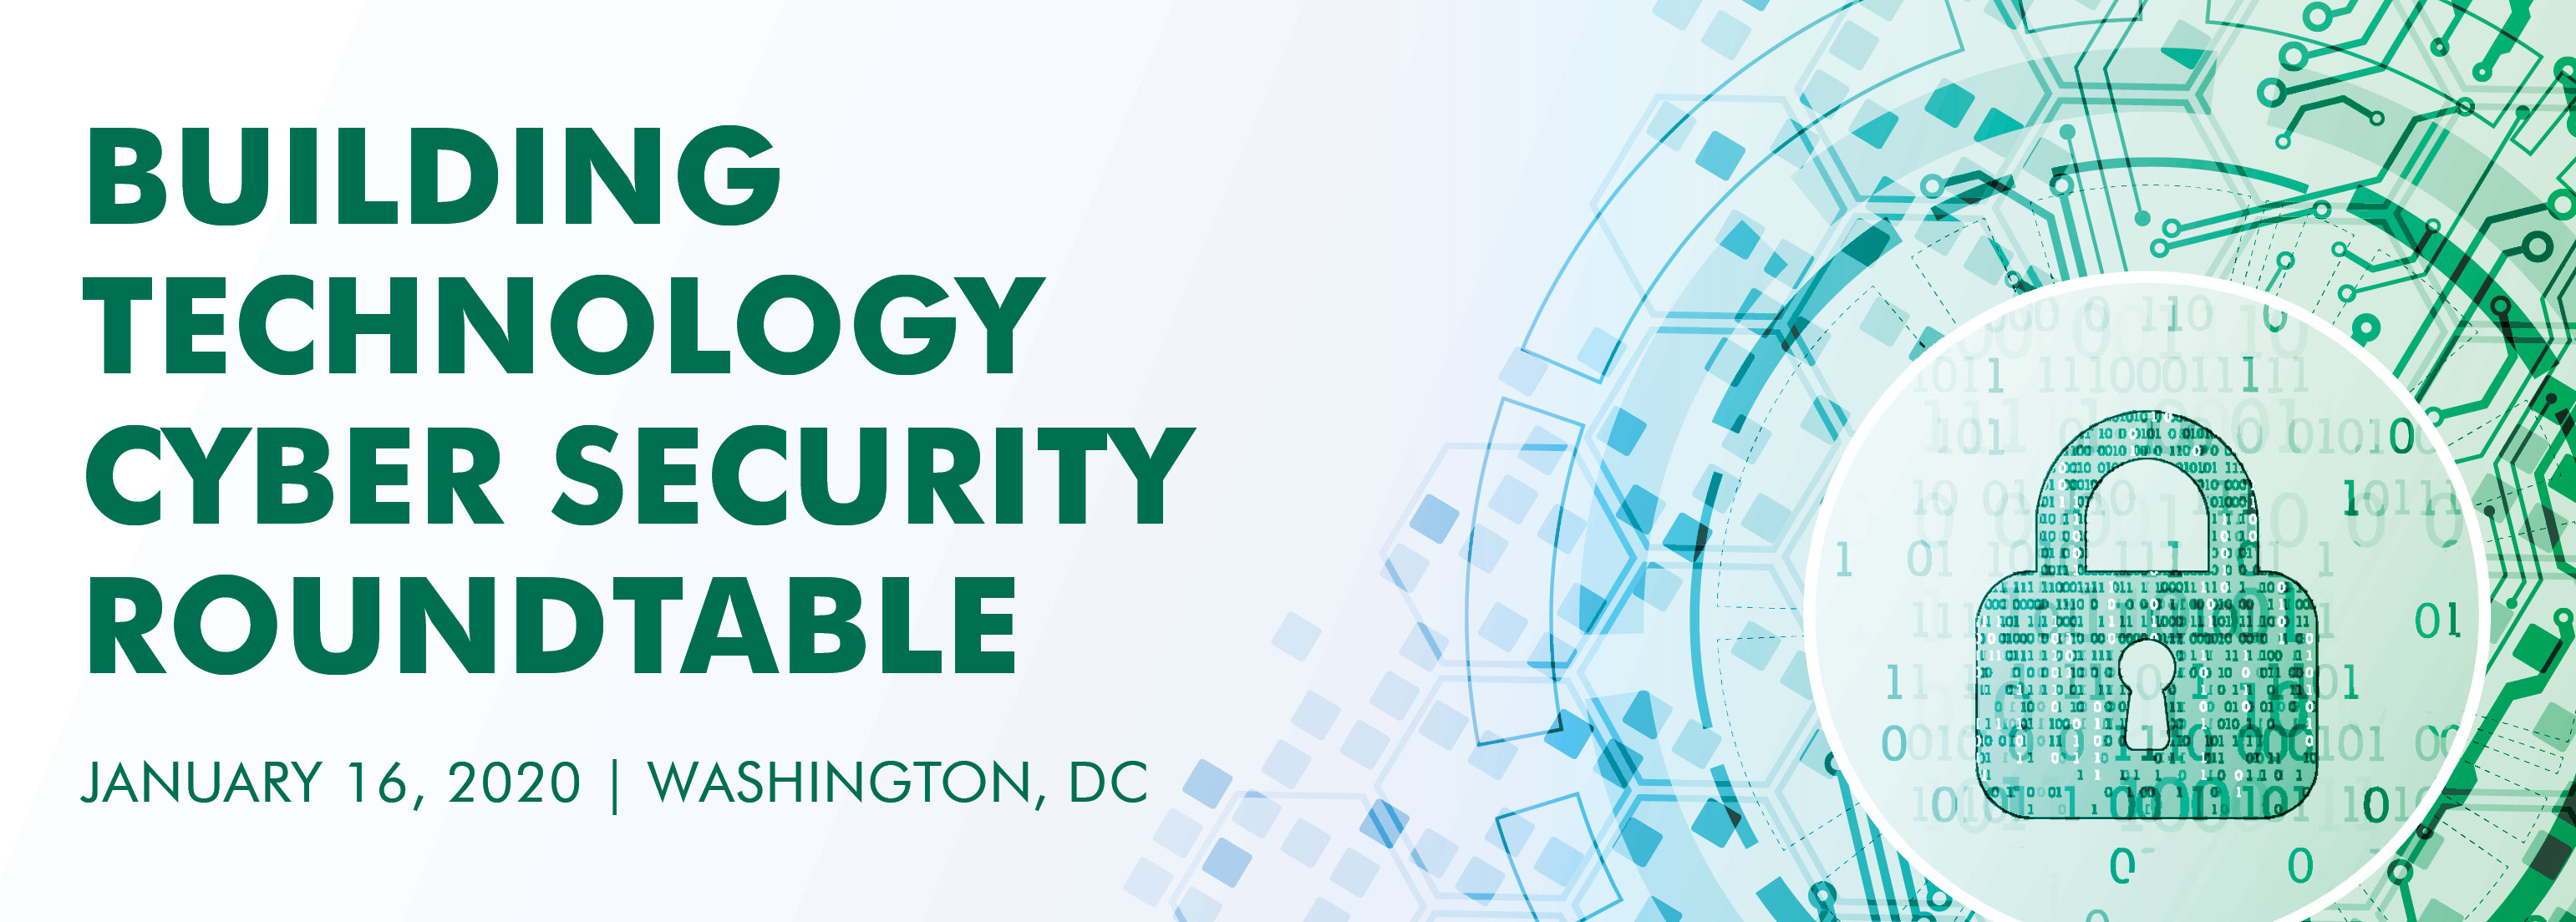 "CBRE Building Technology ""Call to Action"" Cyber Roundtable"